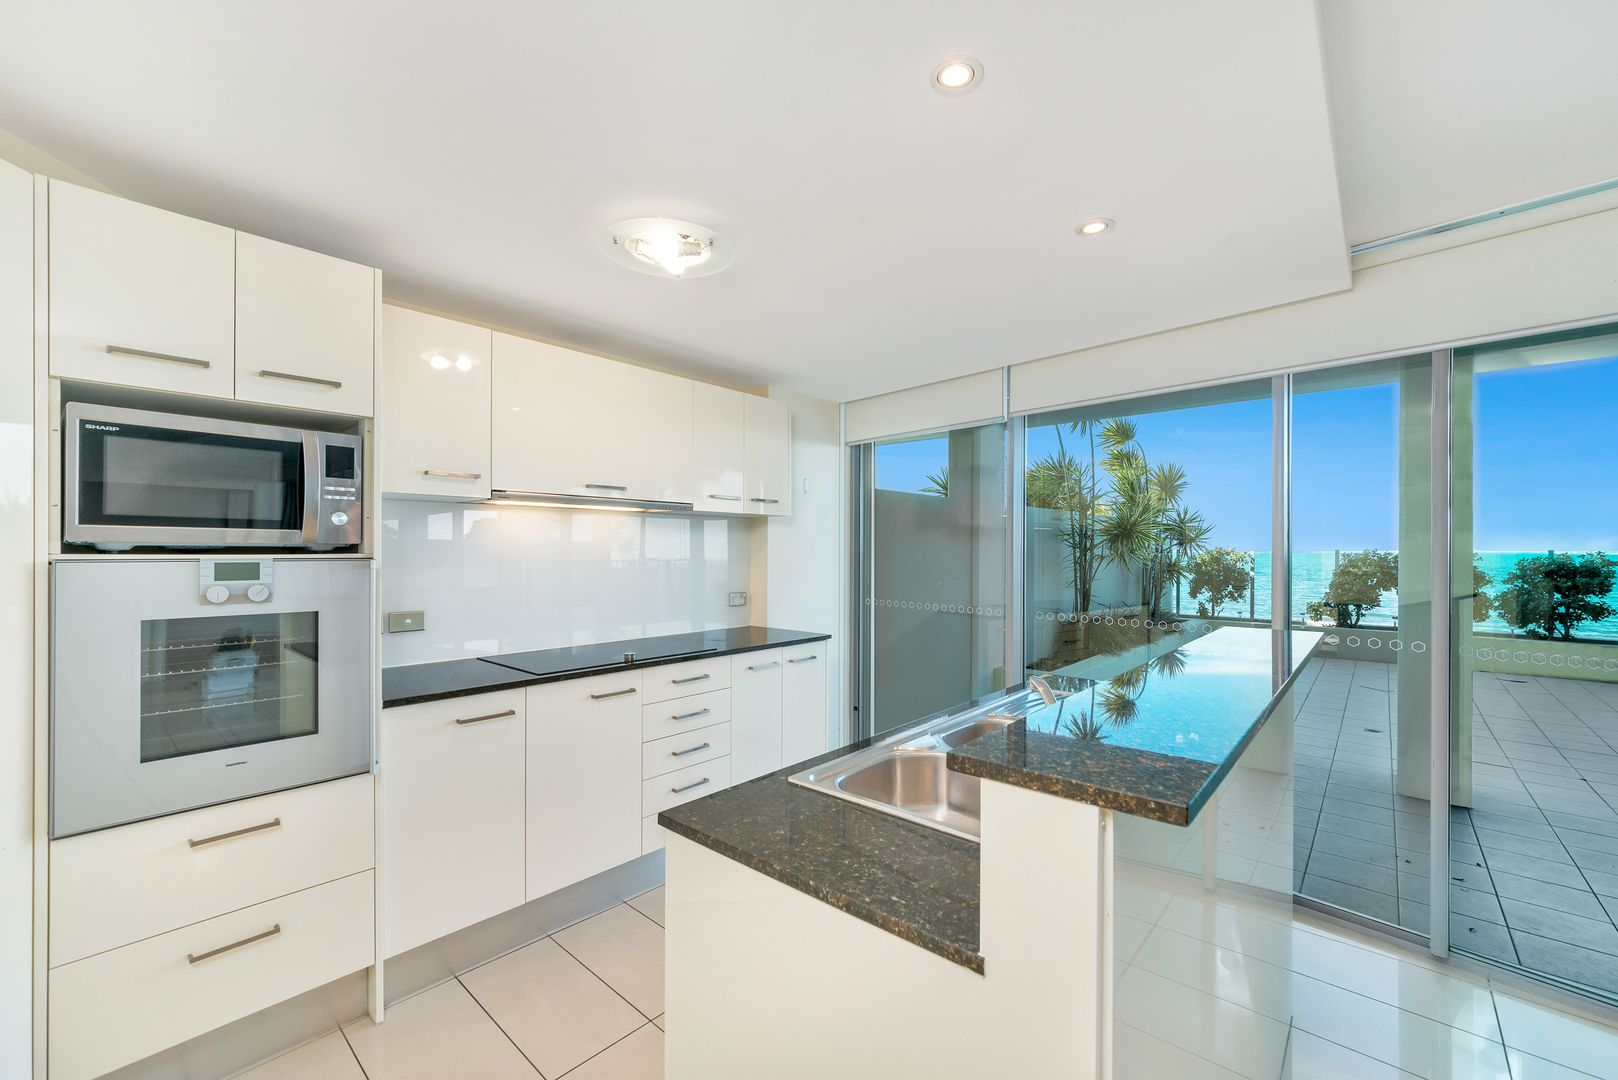 6-12 Oxley Avenue, Woody Point QLD 4019, Image 1